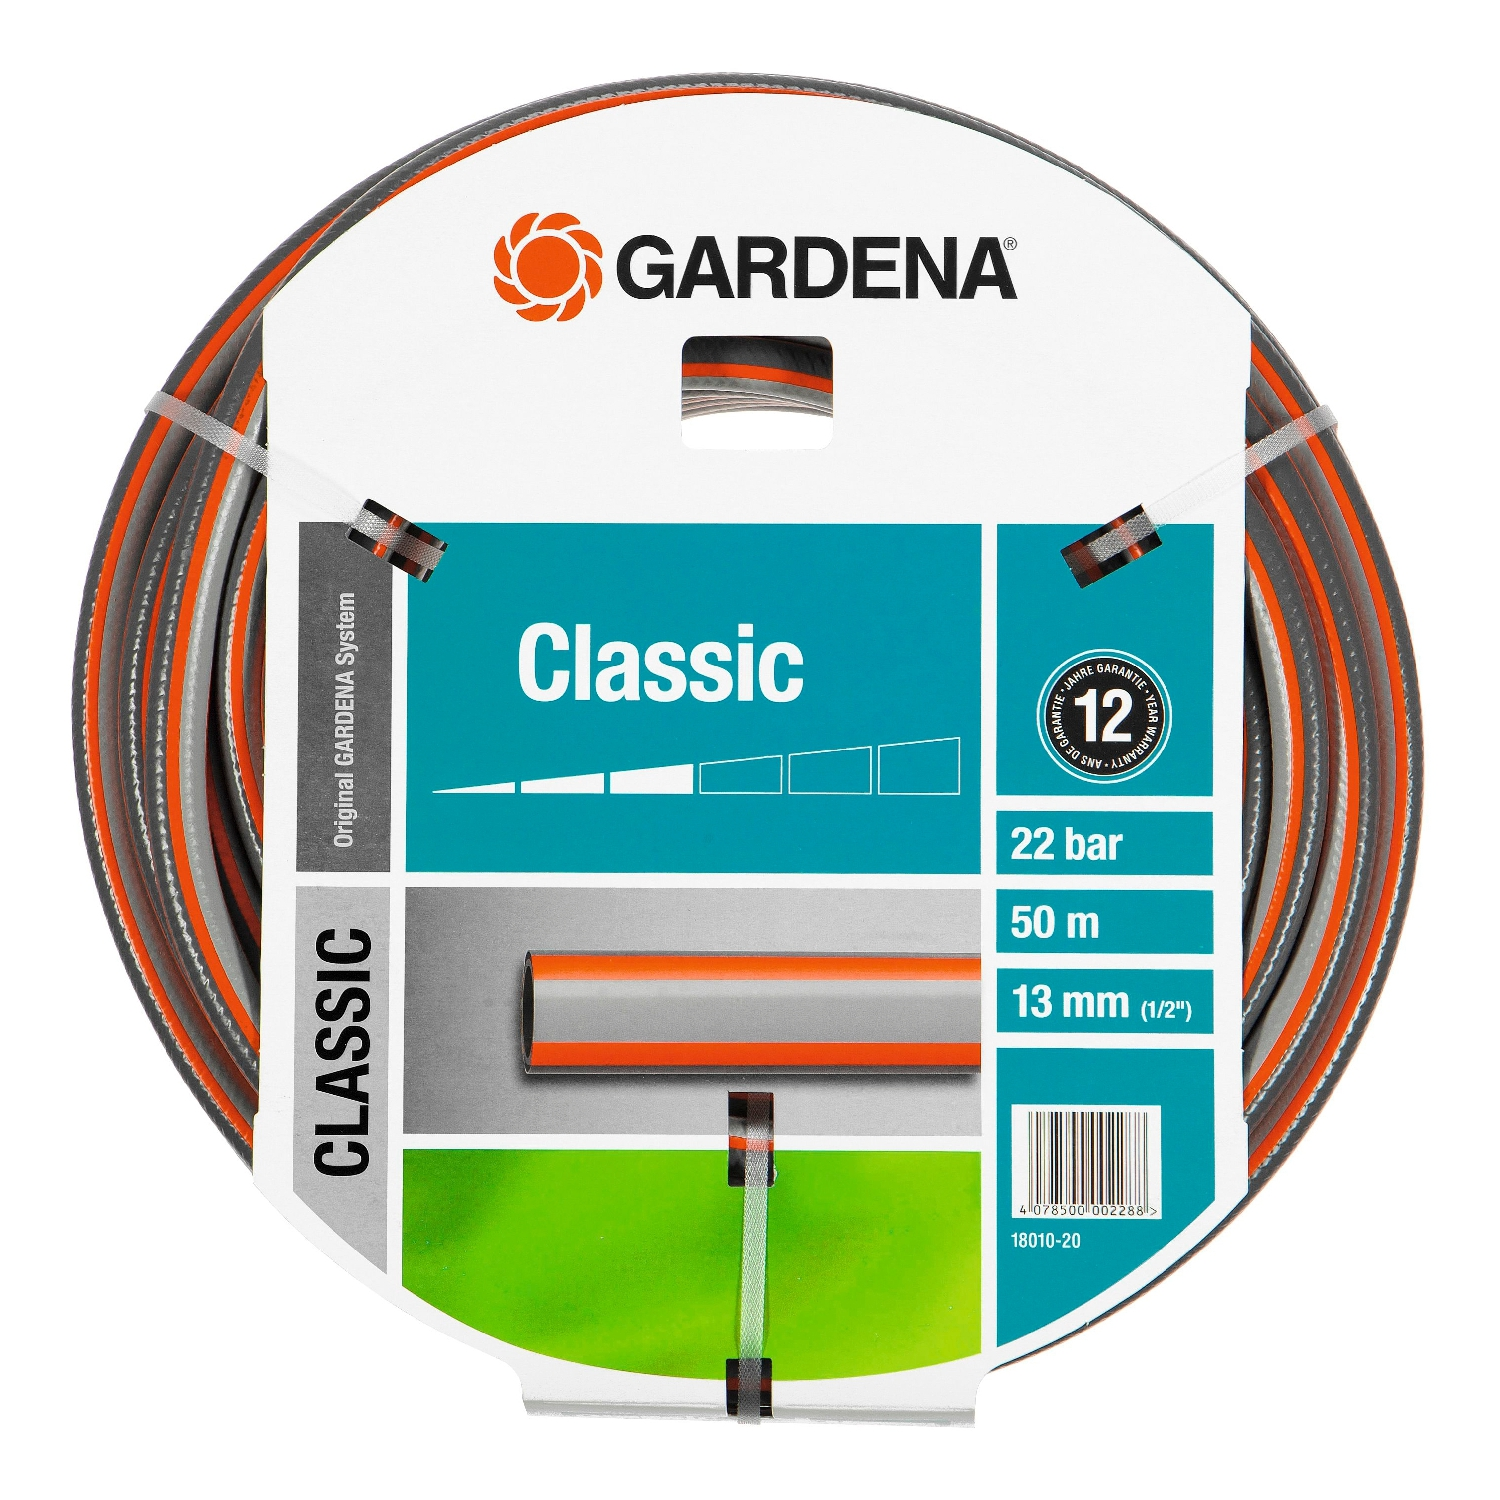 цена Watering hose GARDENA 18010-20.000.00 (20 m Length, diameter 13mm (1/2) maximum pressure 22 bar, reinforced, светонепроницаем, resistant to uv) онлайн в 2017 году